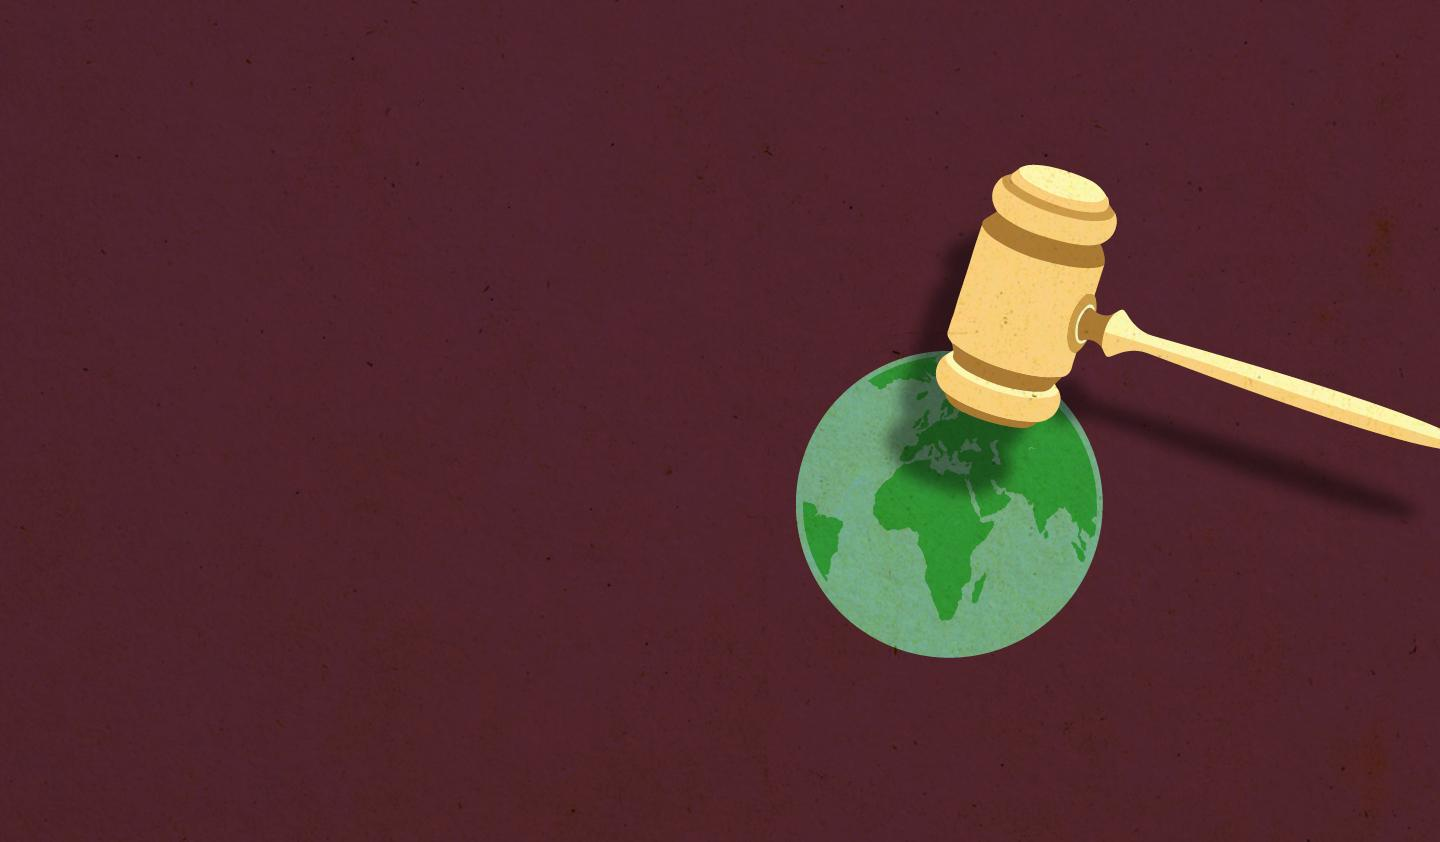 gavel on top of world map